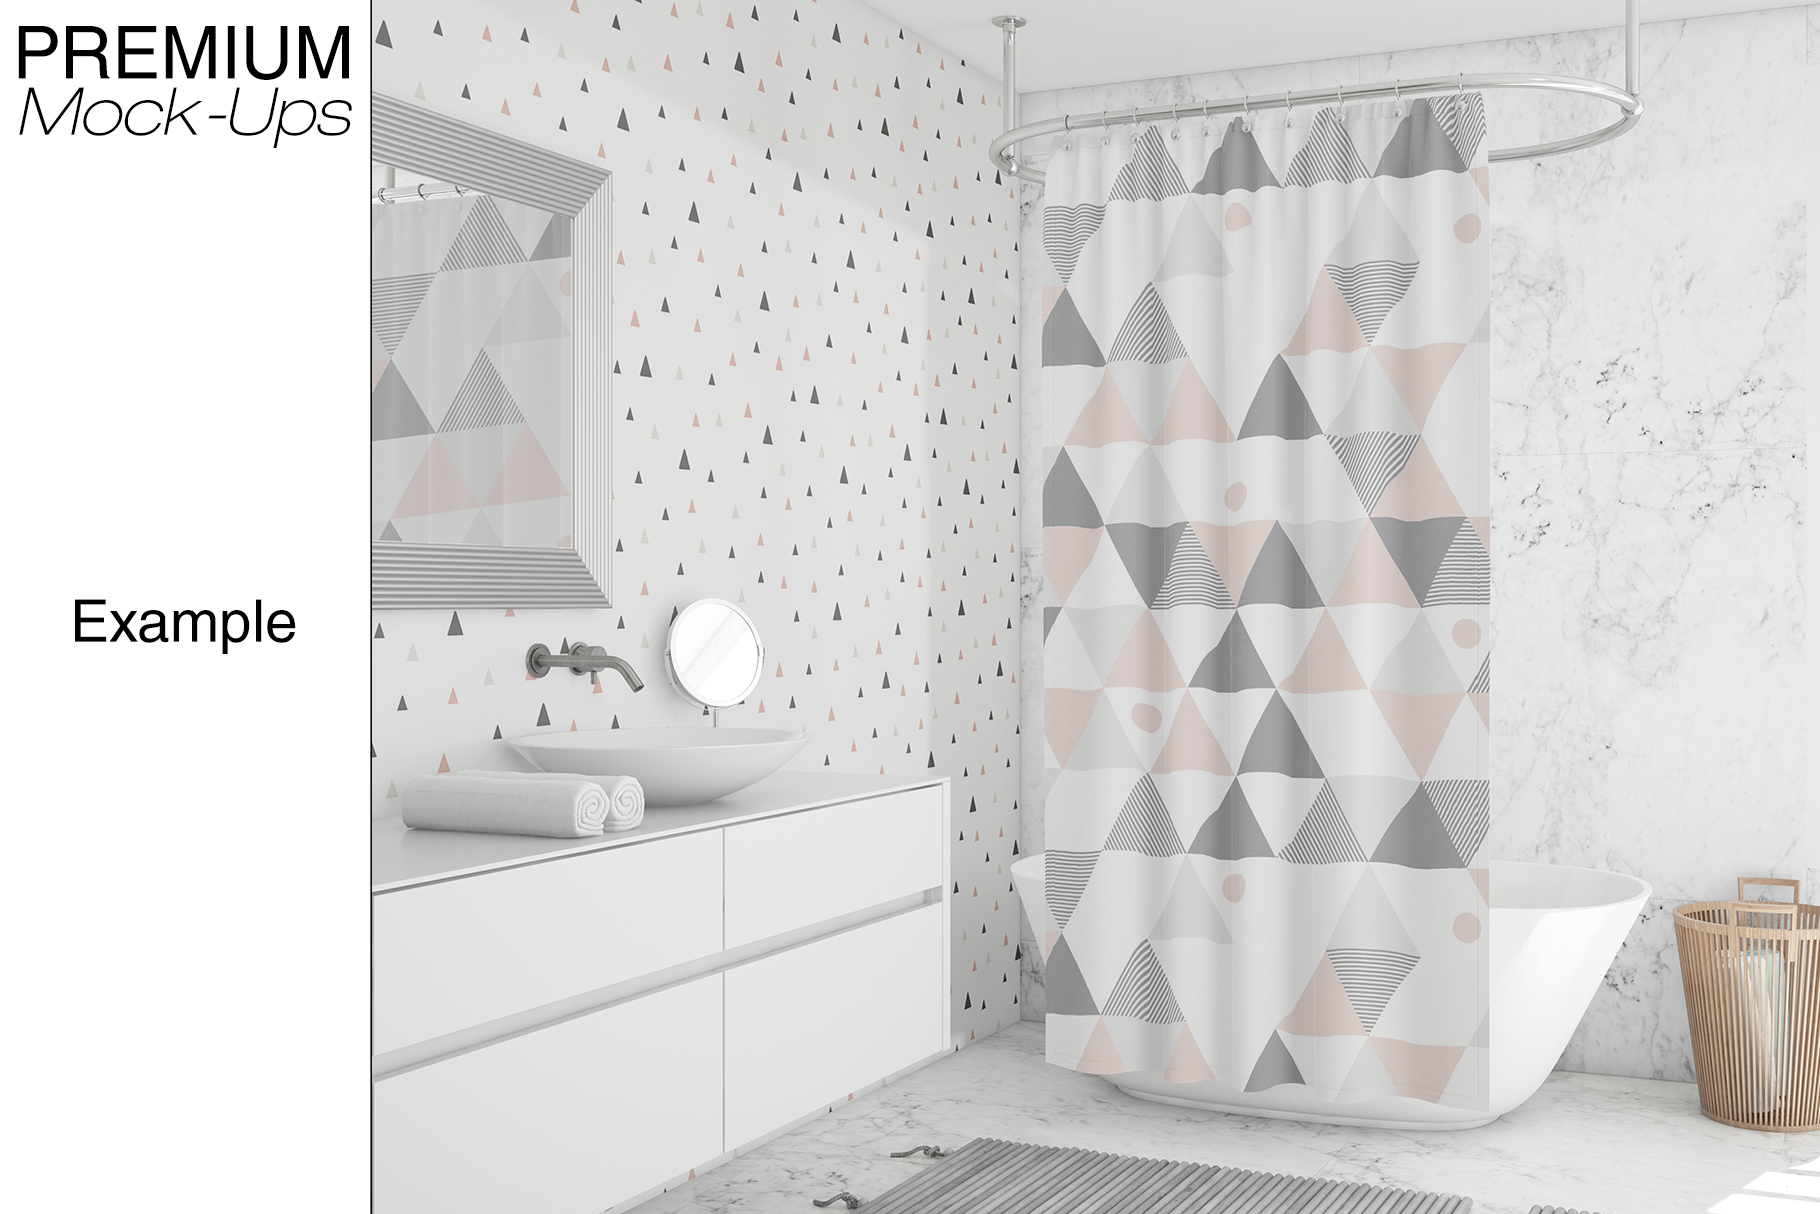 Shower Curtain Mockup Pack example image 5